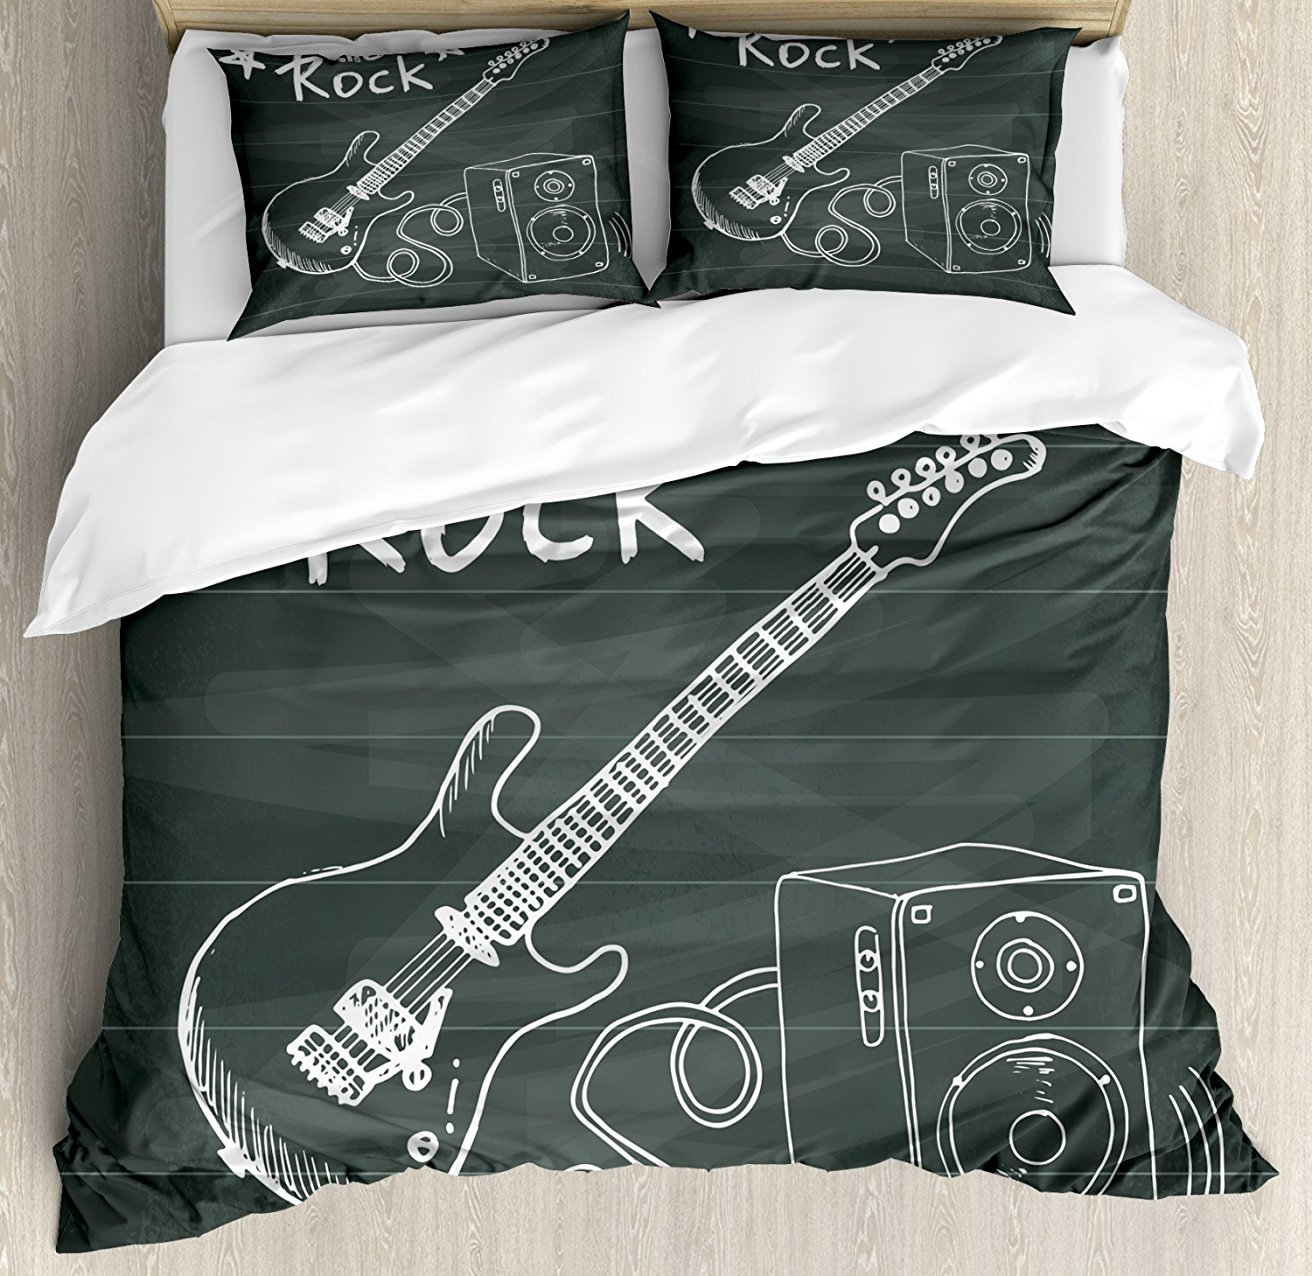 Guitar Duvet Cover Set, Love The Rock Music Themed Sketch Art Sound Box and Text on Chal ...